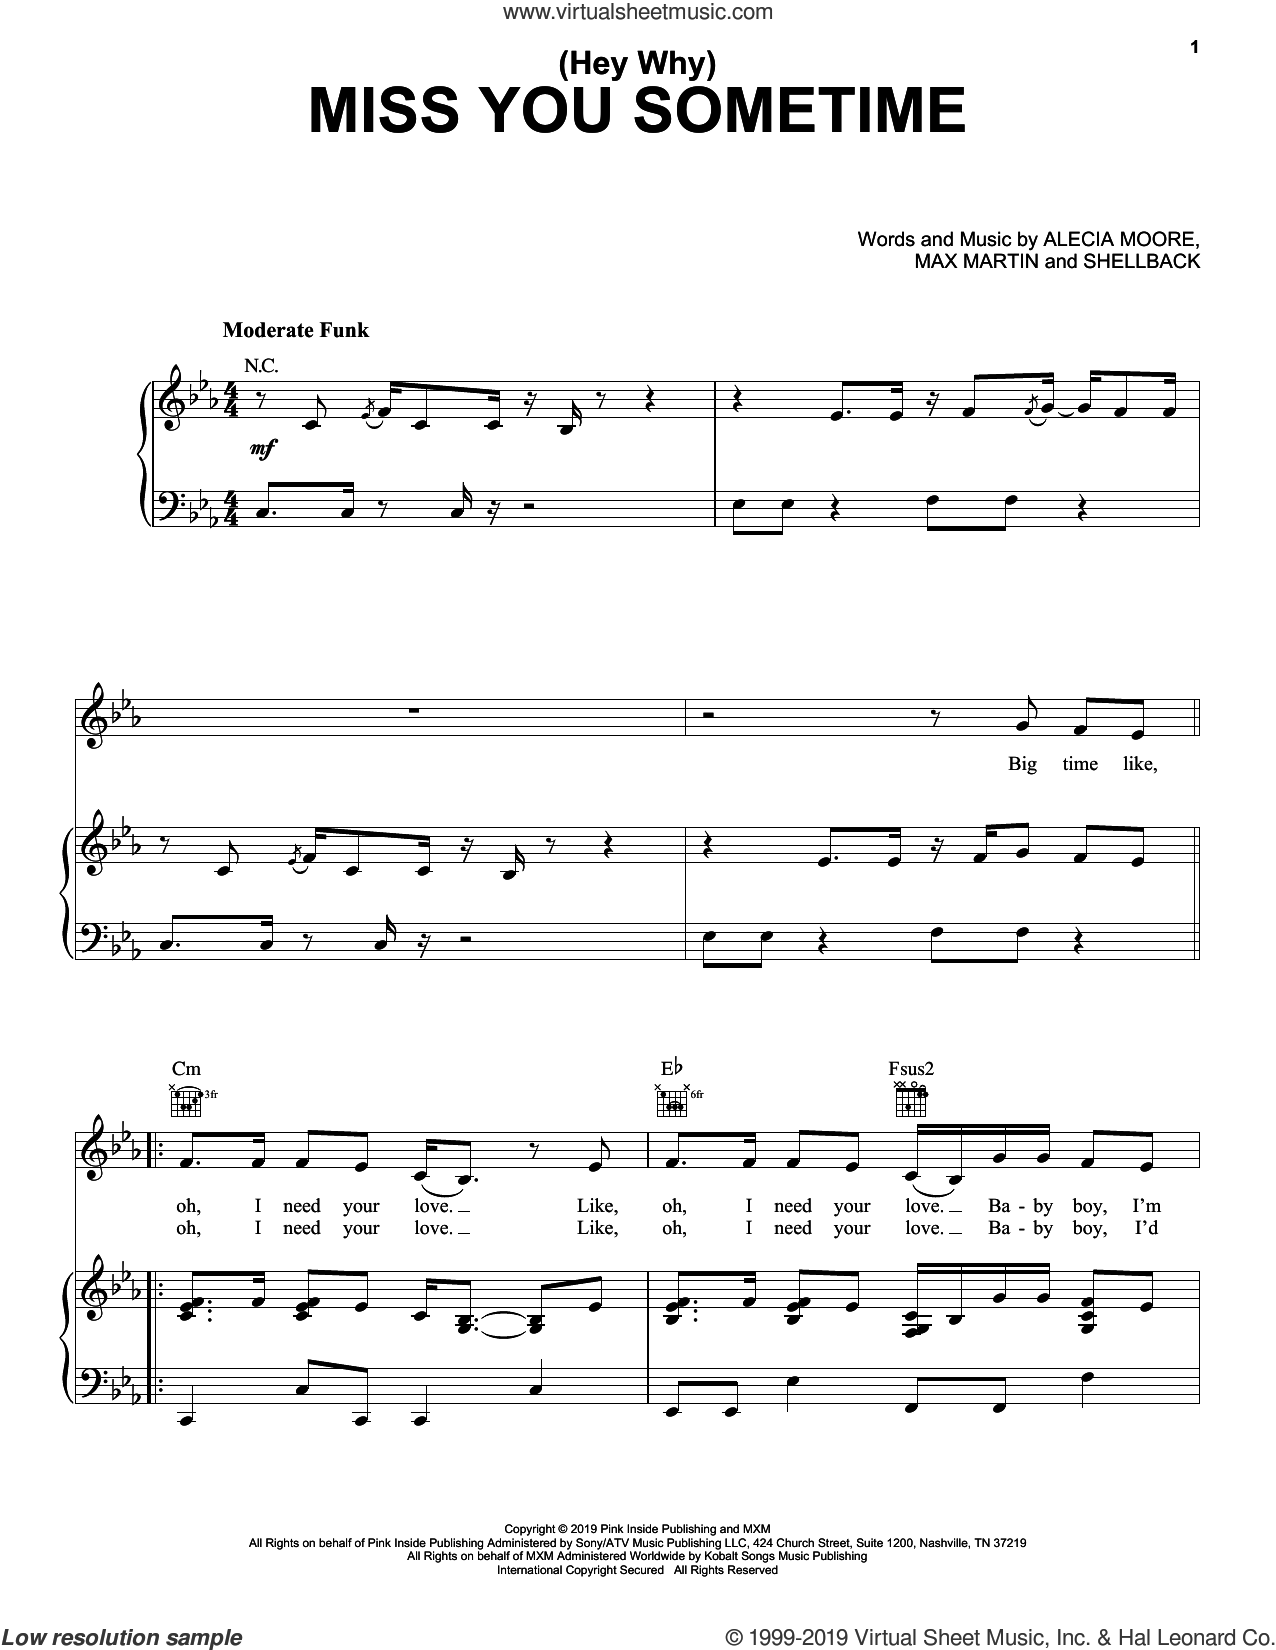 (Hey Why) Miss You Sometime sheet music for voice, piano or guitar by Max Martin, Miscellaneous, P!nk, Alecia Moore and Shellback, intermediate skill level